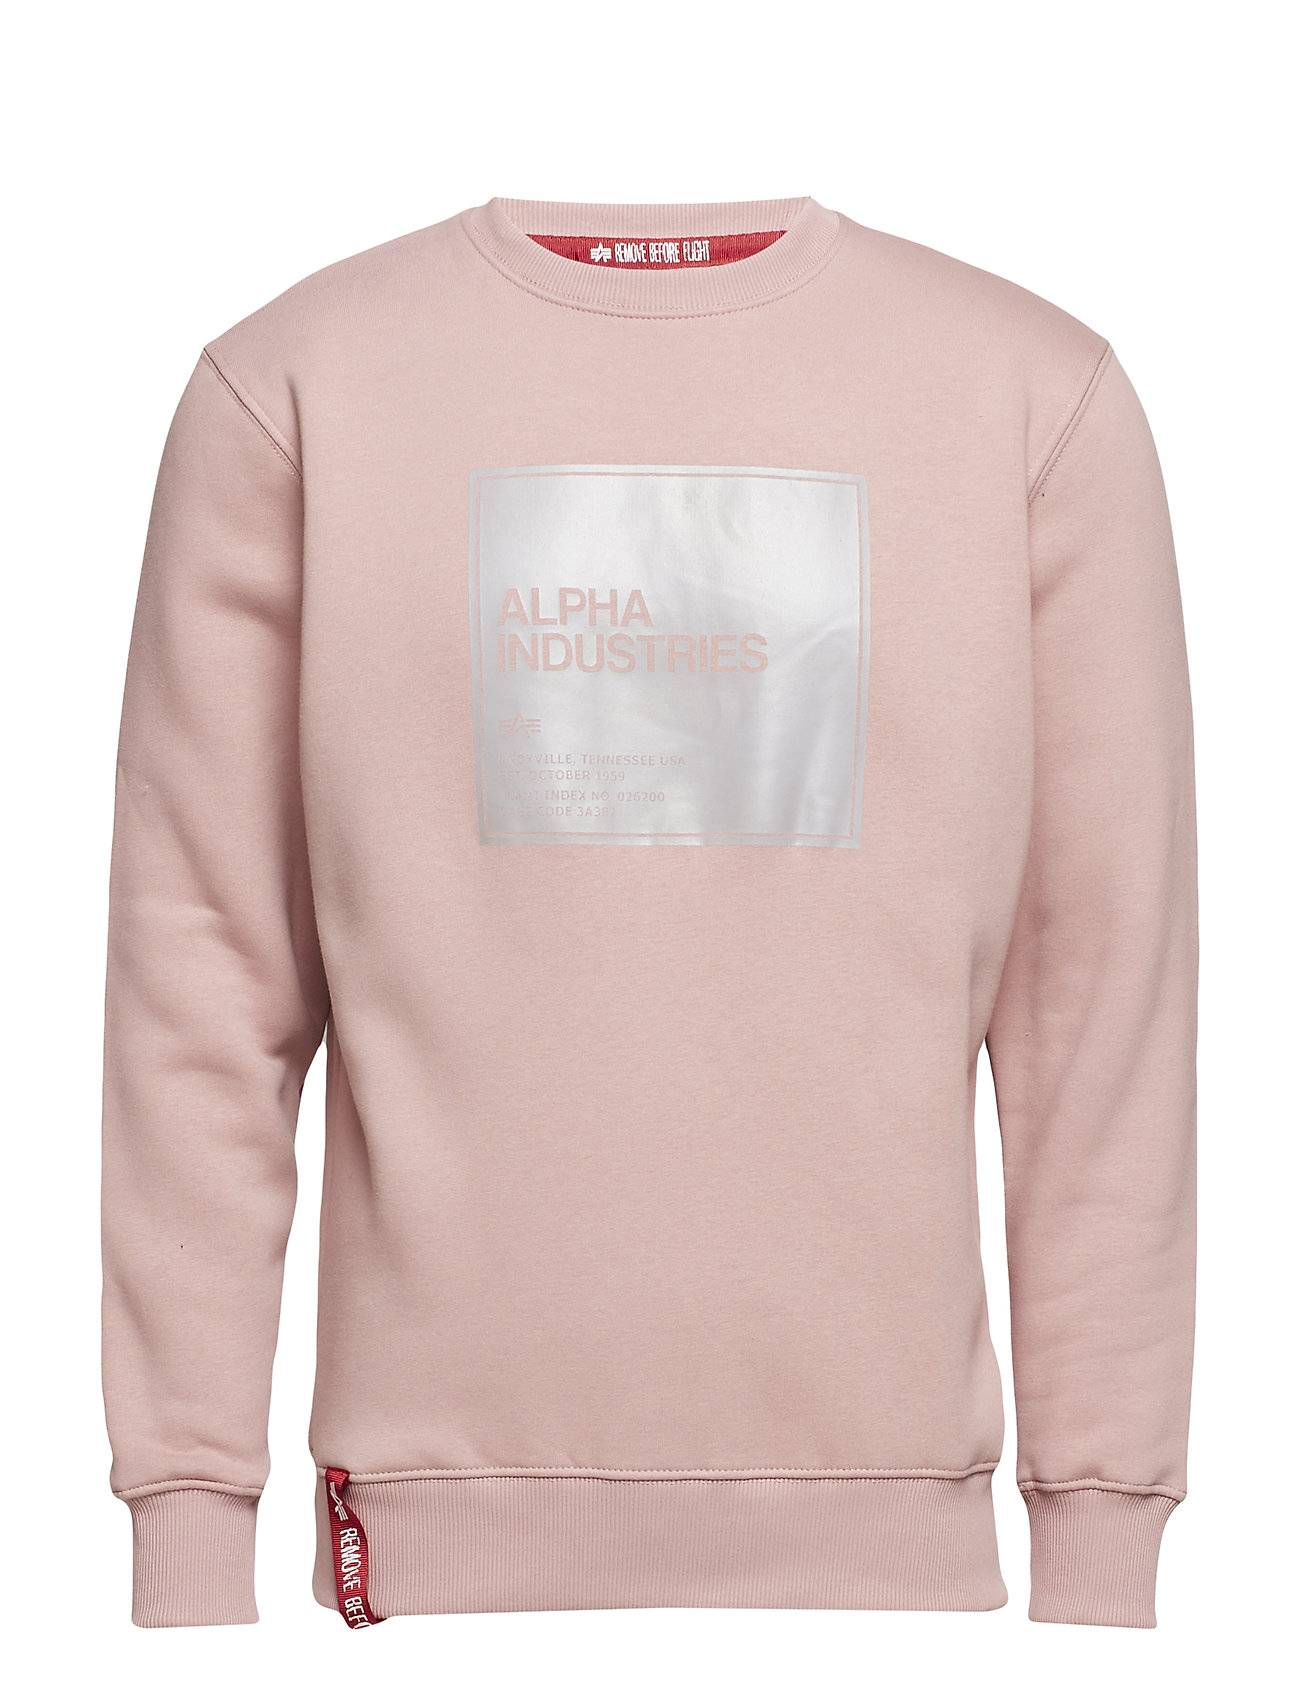 Alpha Industries Label Sweater